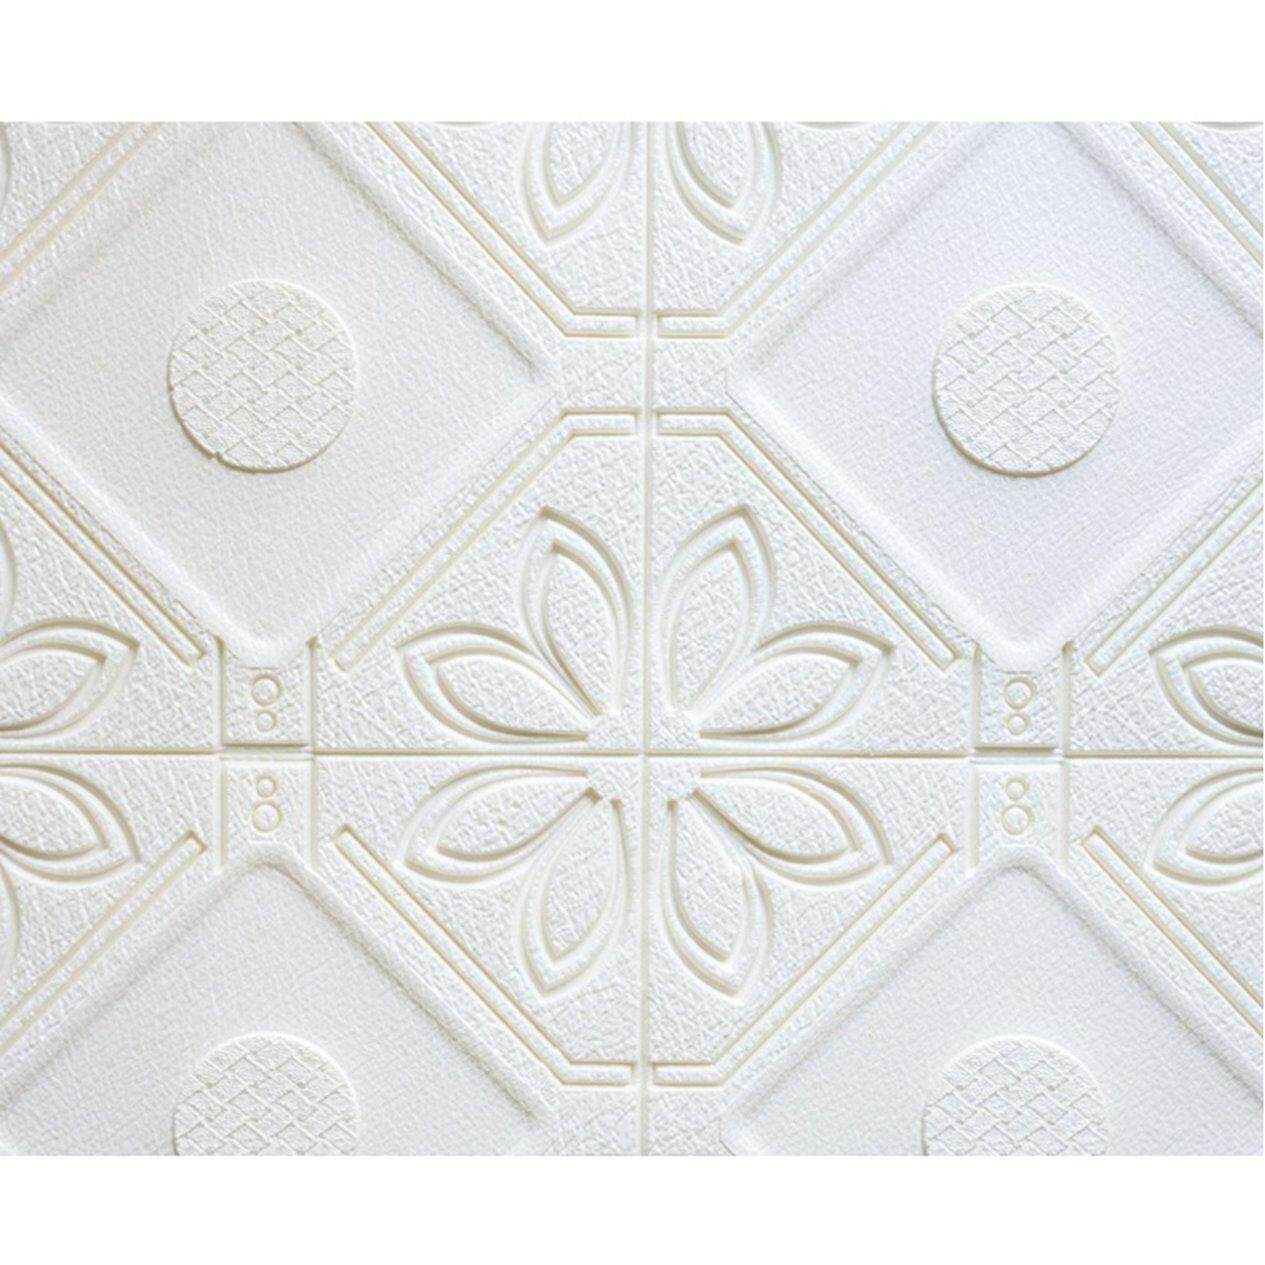 Hot Sellers 3D Wall Panels Peel and Stick Wallpaper Self-Adhesive Design for Living Room